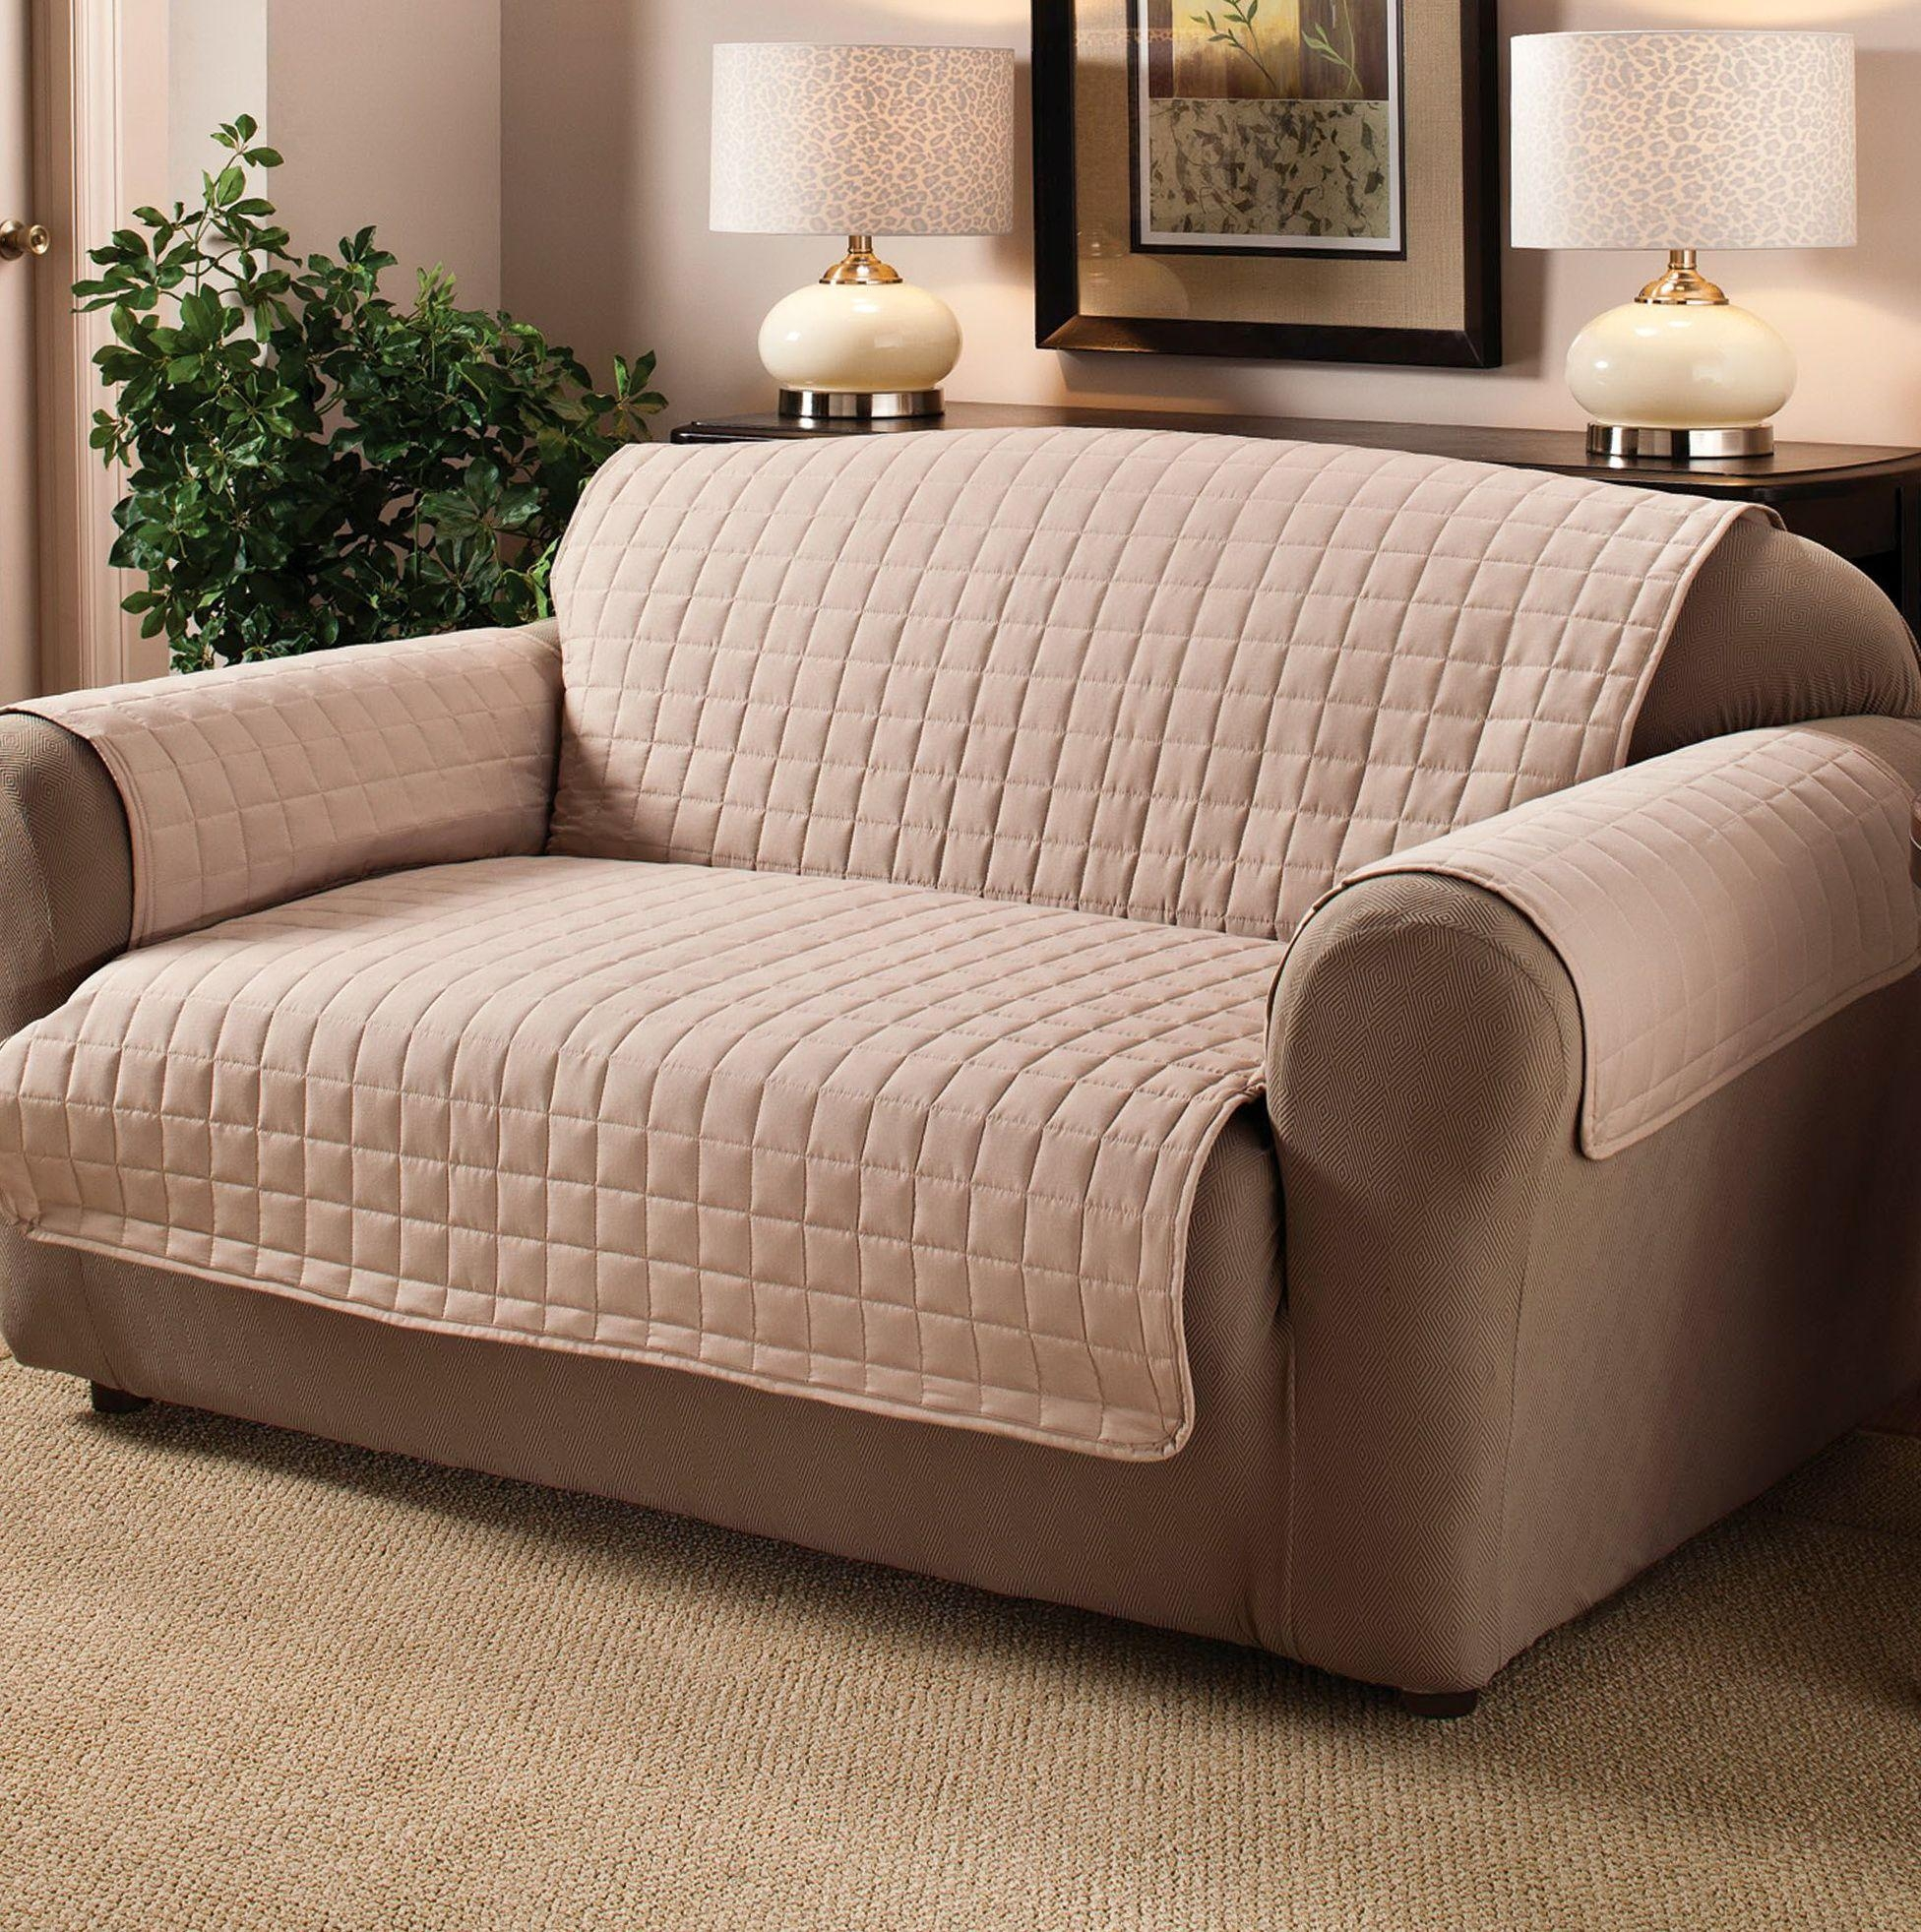 Furniture: Couch Covers For Pets Walmart | Couch Covers Walmart Throughout Slipcover For Reclining Sofas (View 16 of 20)